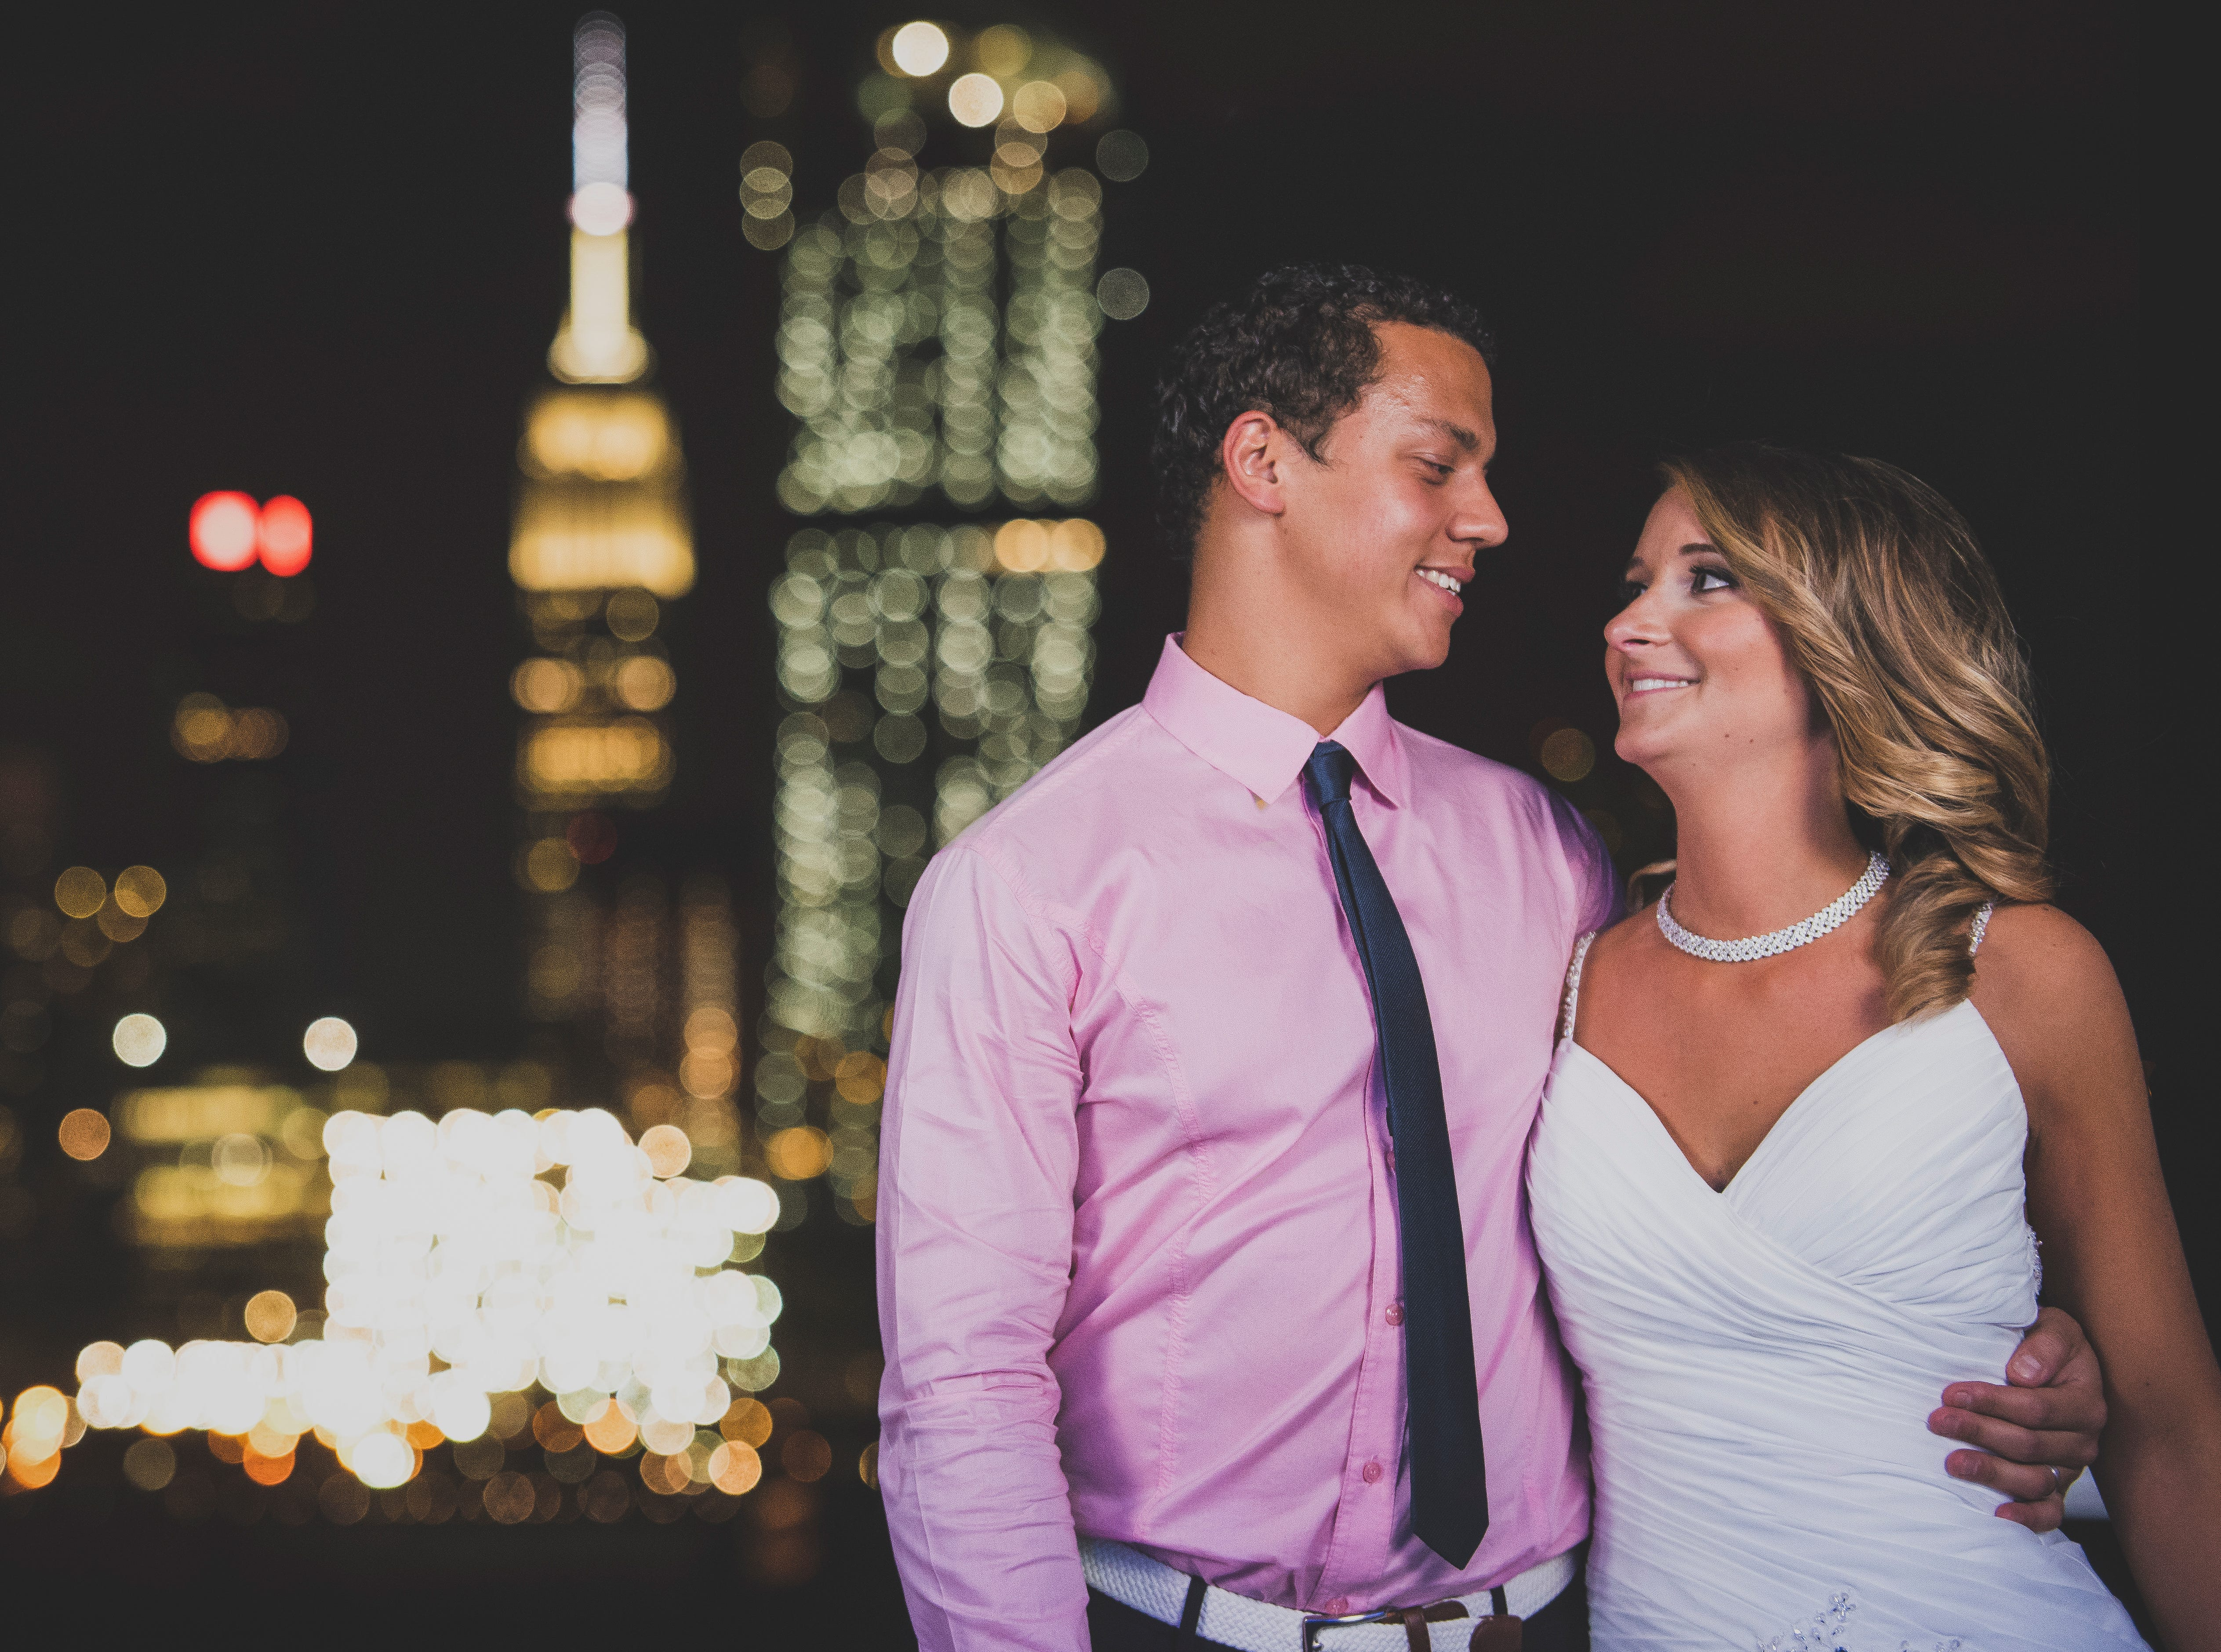 The wedding of Rebecca and Marcus Gordon at The Majestic Princess in Weehawken, New Jersey.